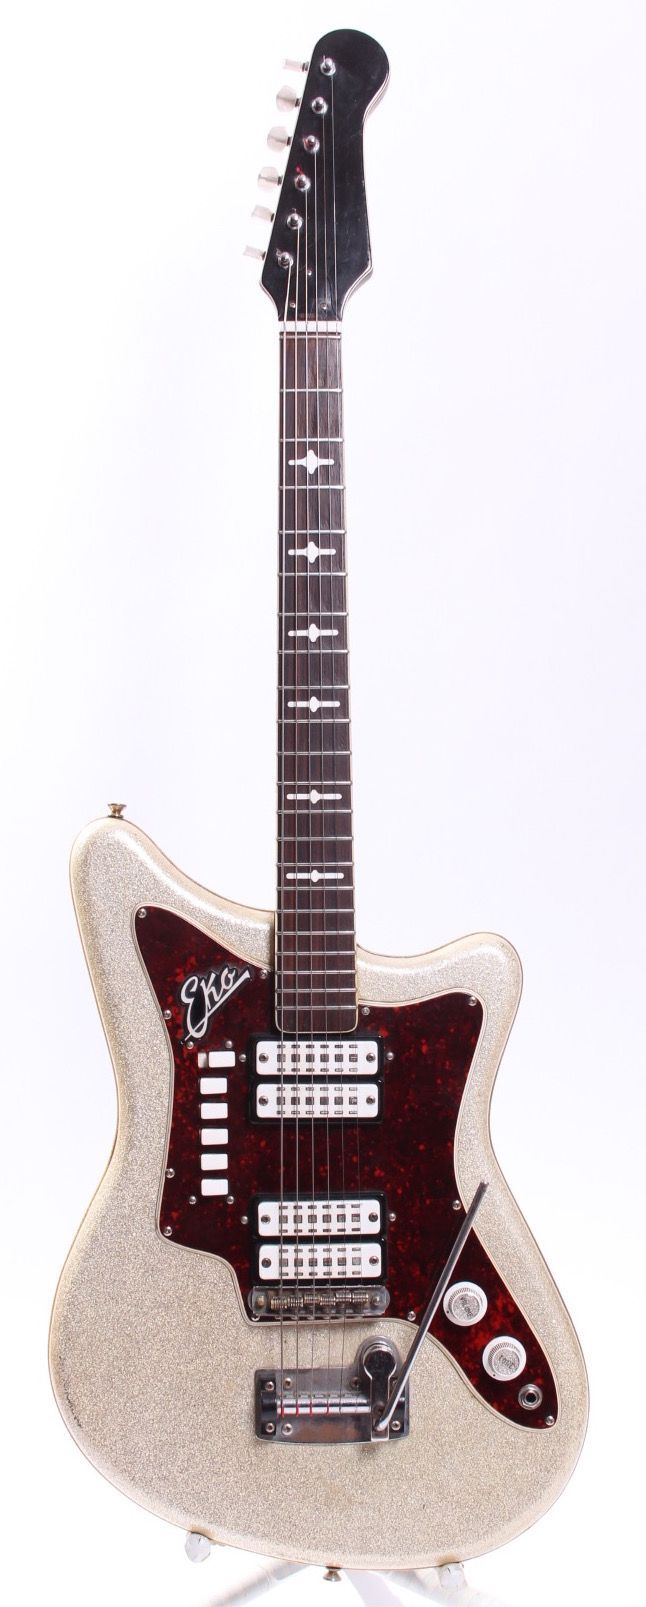 11 best gear images on Pinterest   Guitars, Music instruments and ...